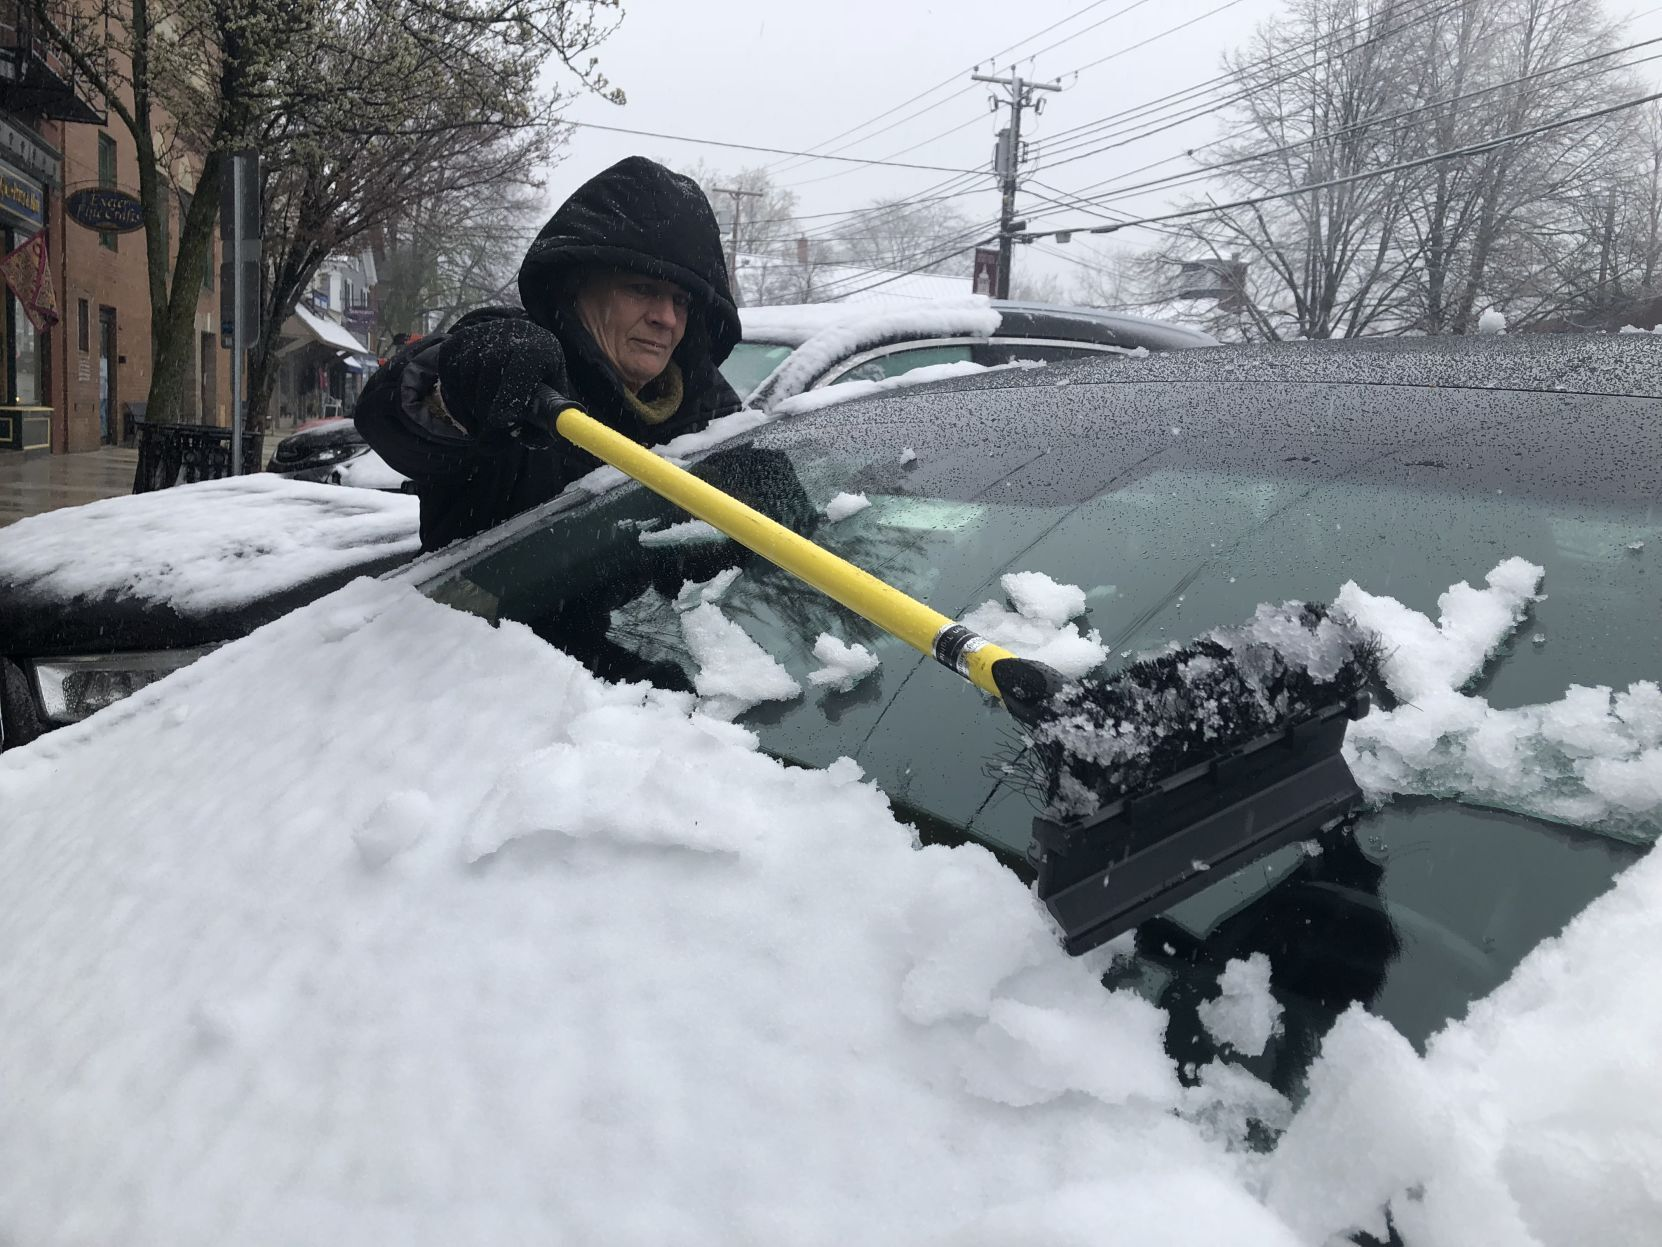 April storm brings snow to New Hampshire